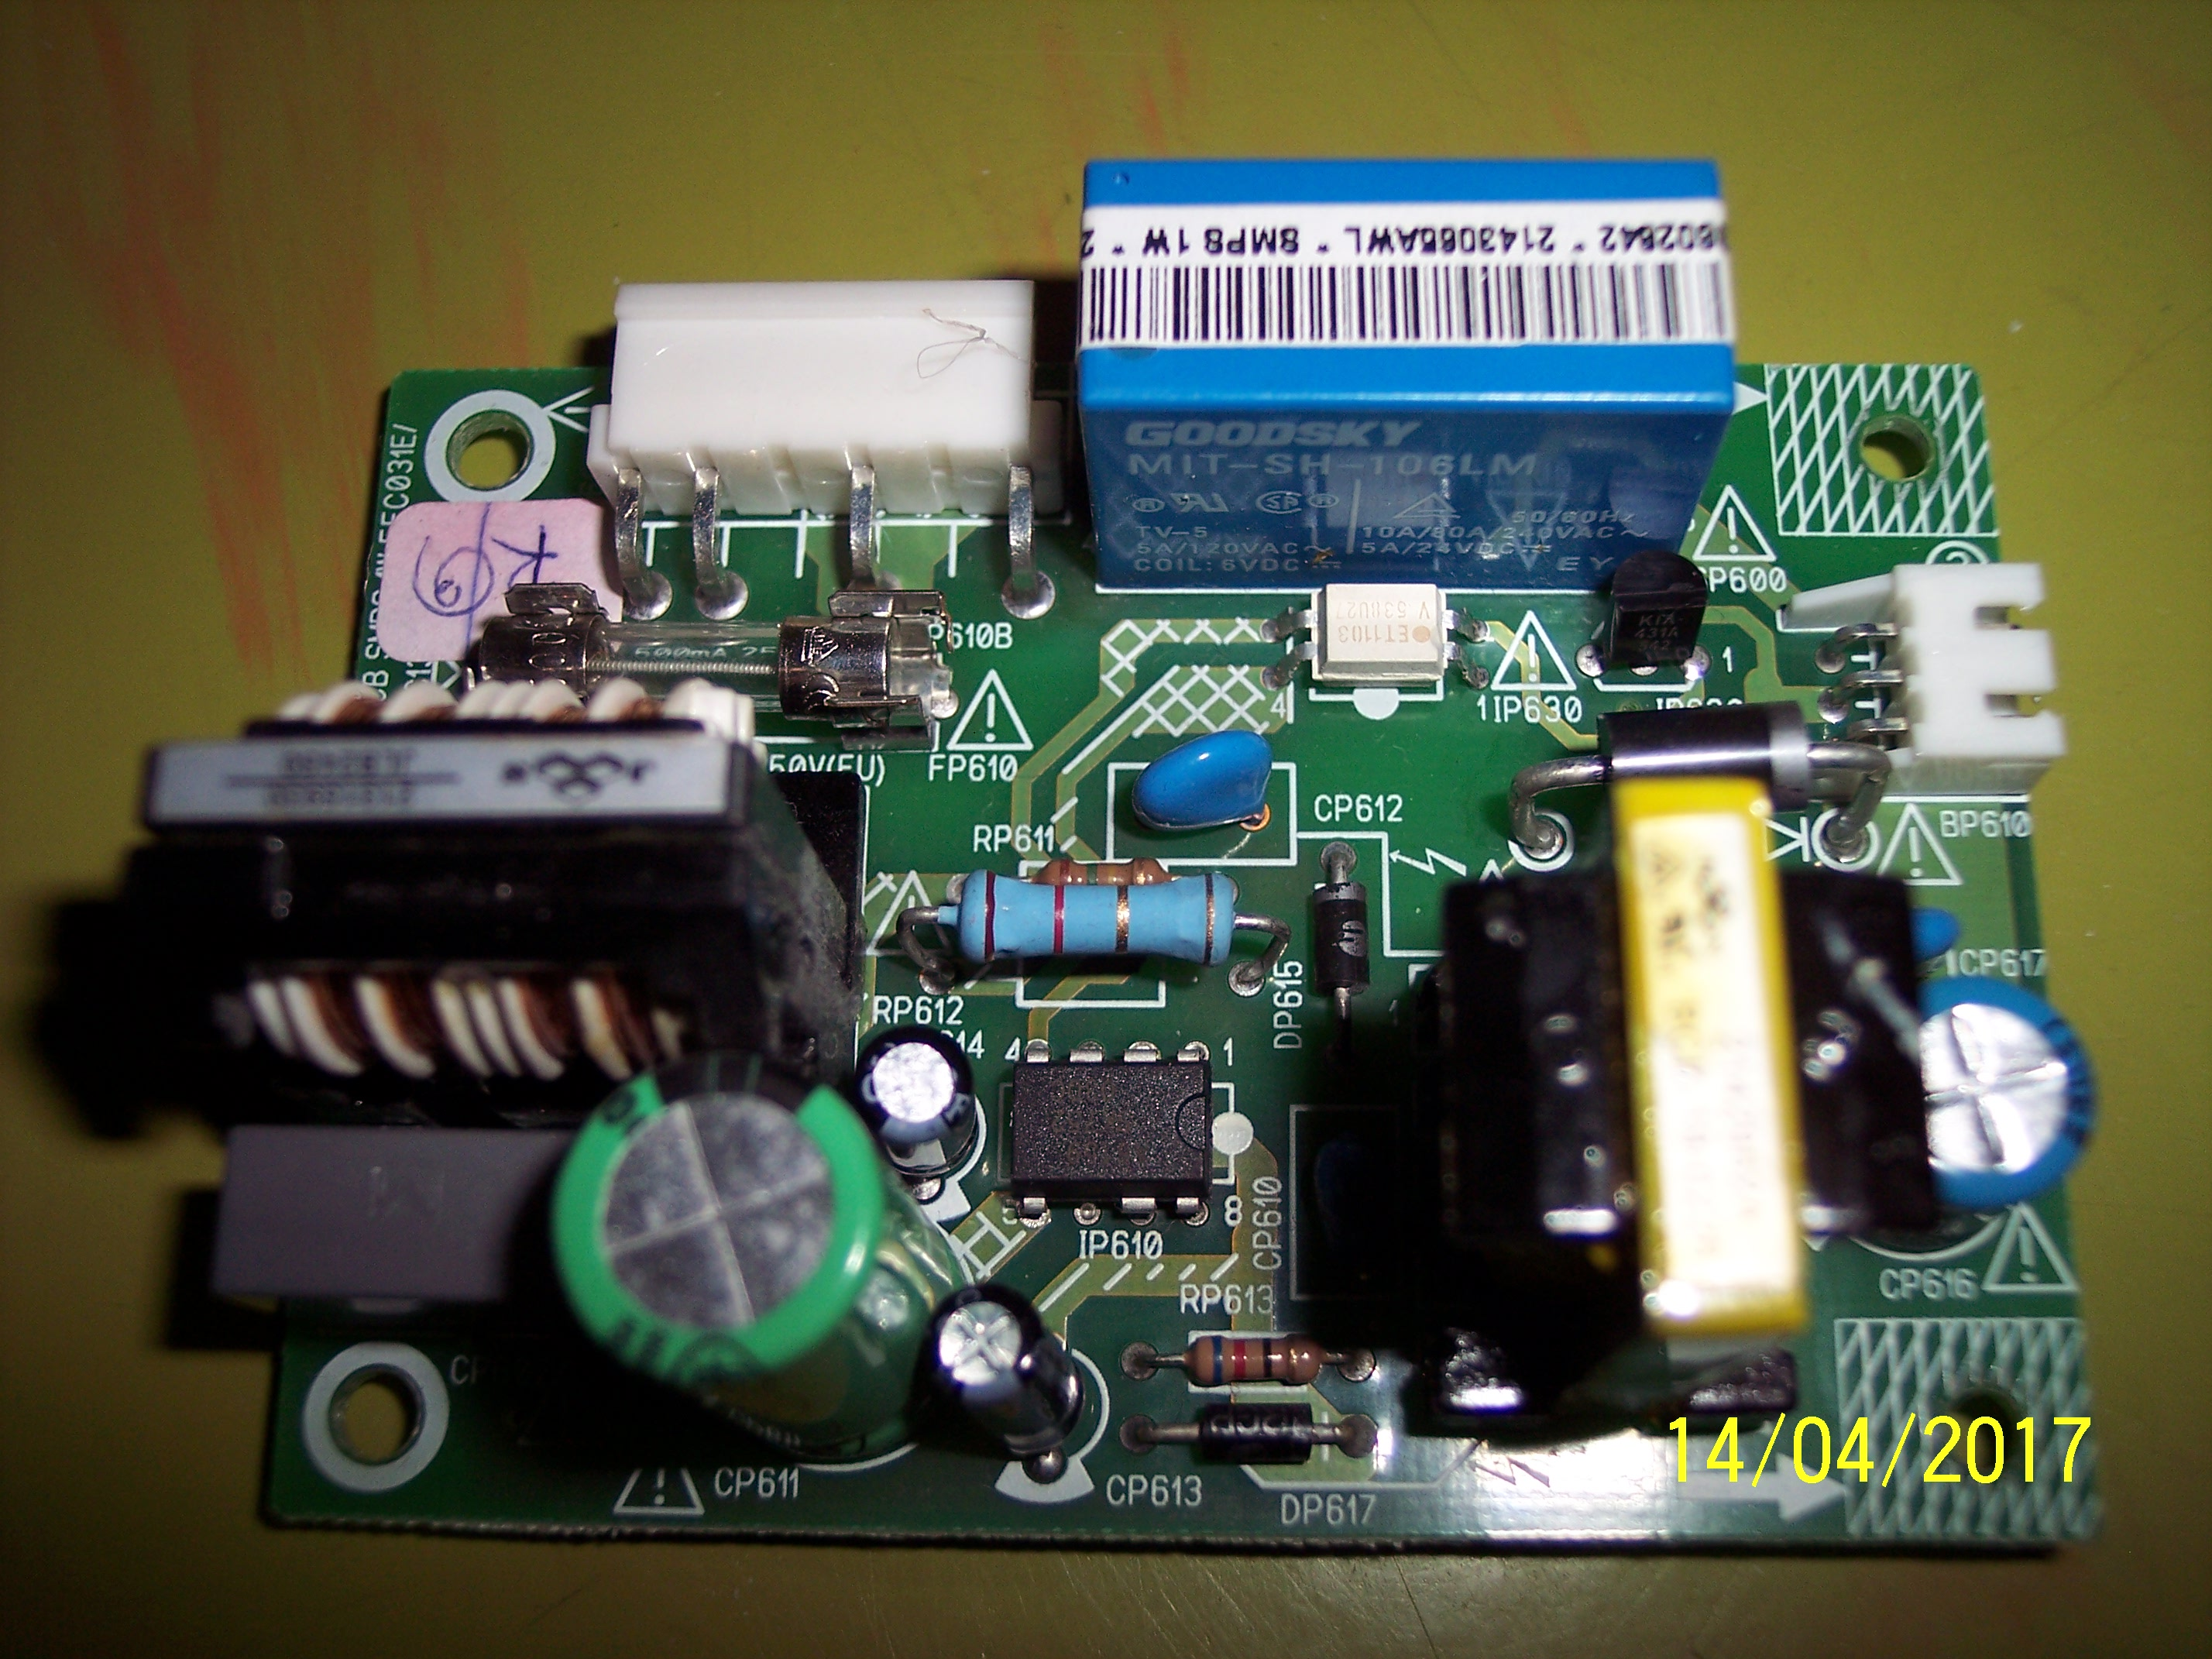 EFC031E IFC130/IFC230 STANDBY POWER SUPPLY LCD TV THOMSON